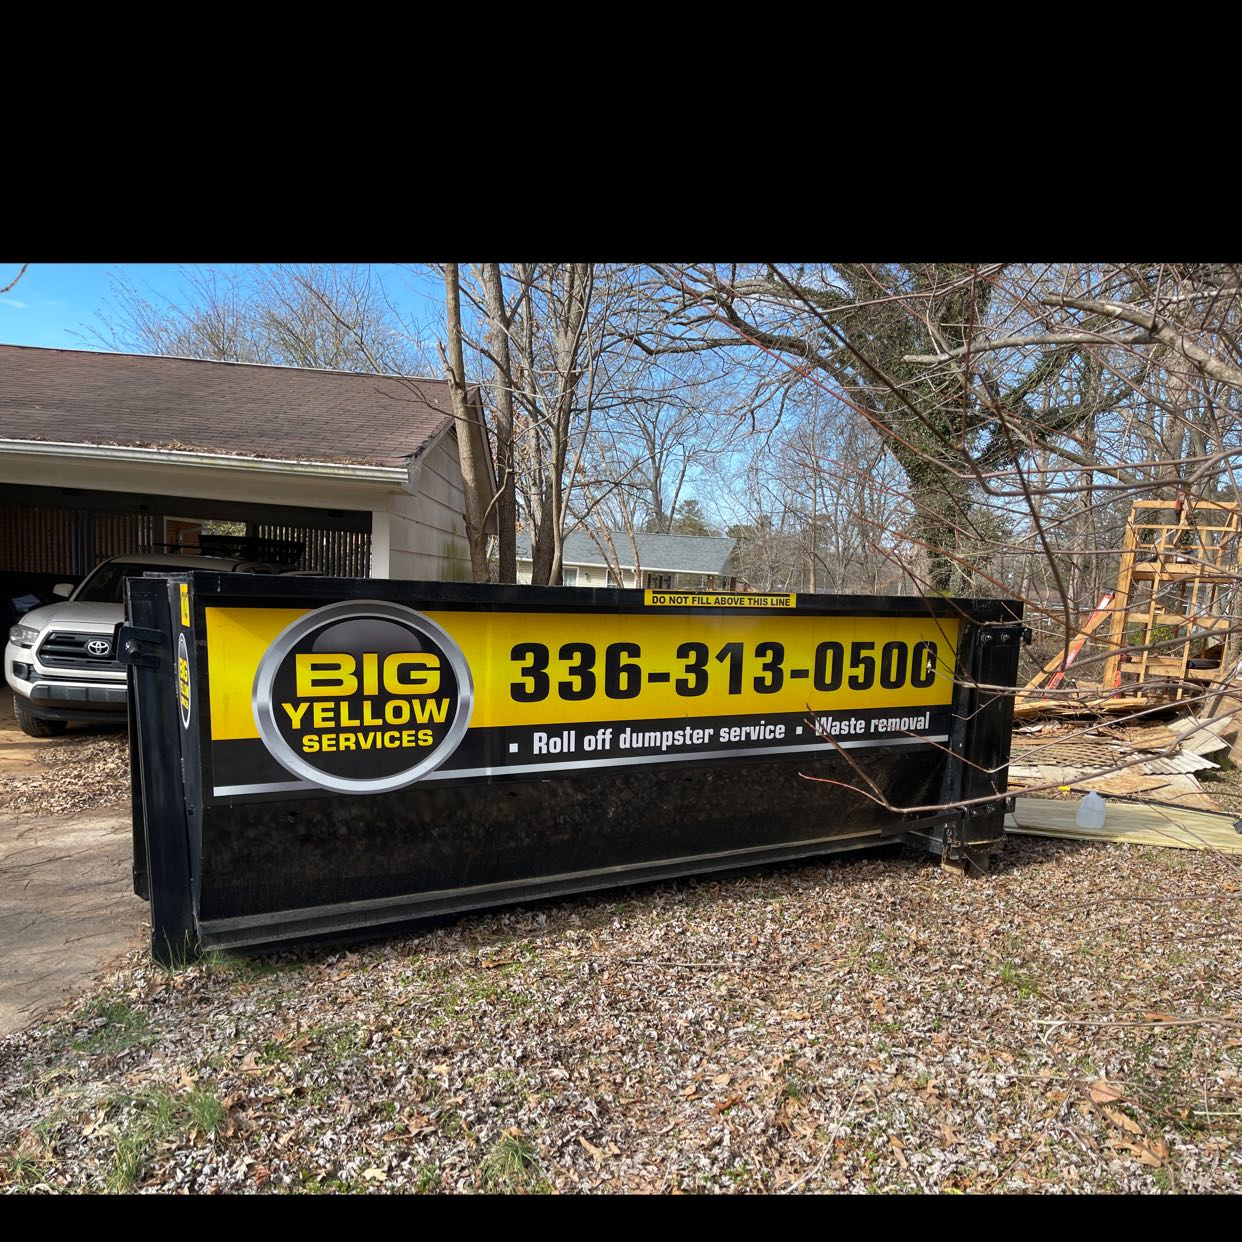 Glen Oaks Road Burlington, NC 27217 Dumpster Rentals in Graham, NC | Roll-Off Dumpster Rentals | Big Yellow Services